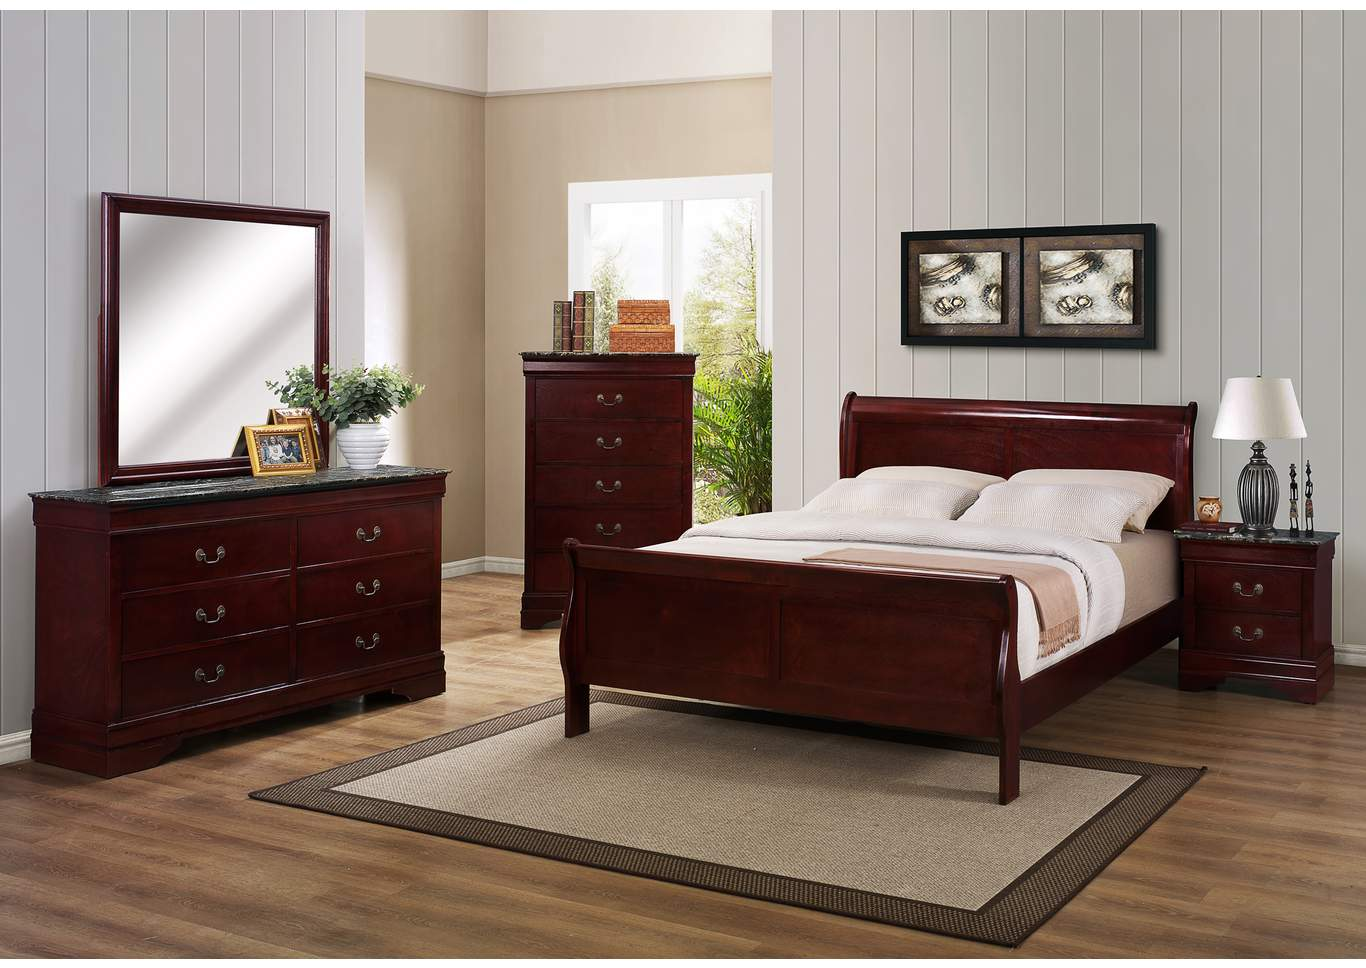 Louis Philip Cherry Twin Sleigh Bed w/Dresser, Mirror and Drawer Chest,Crown Mark